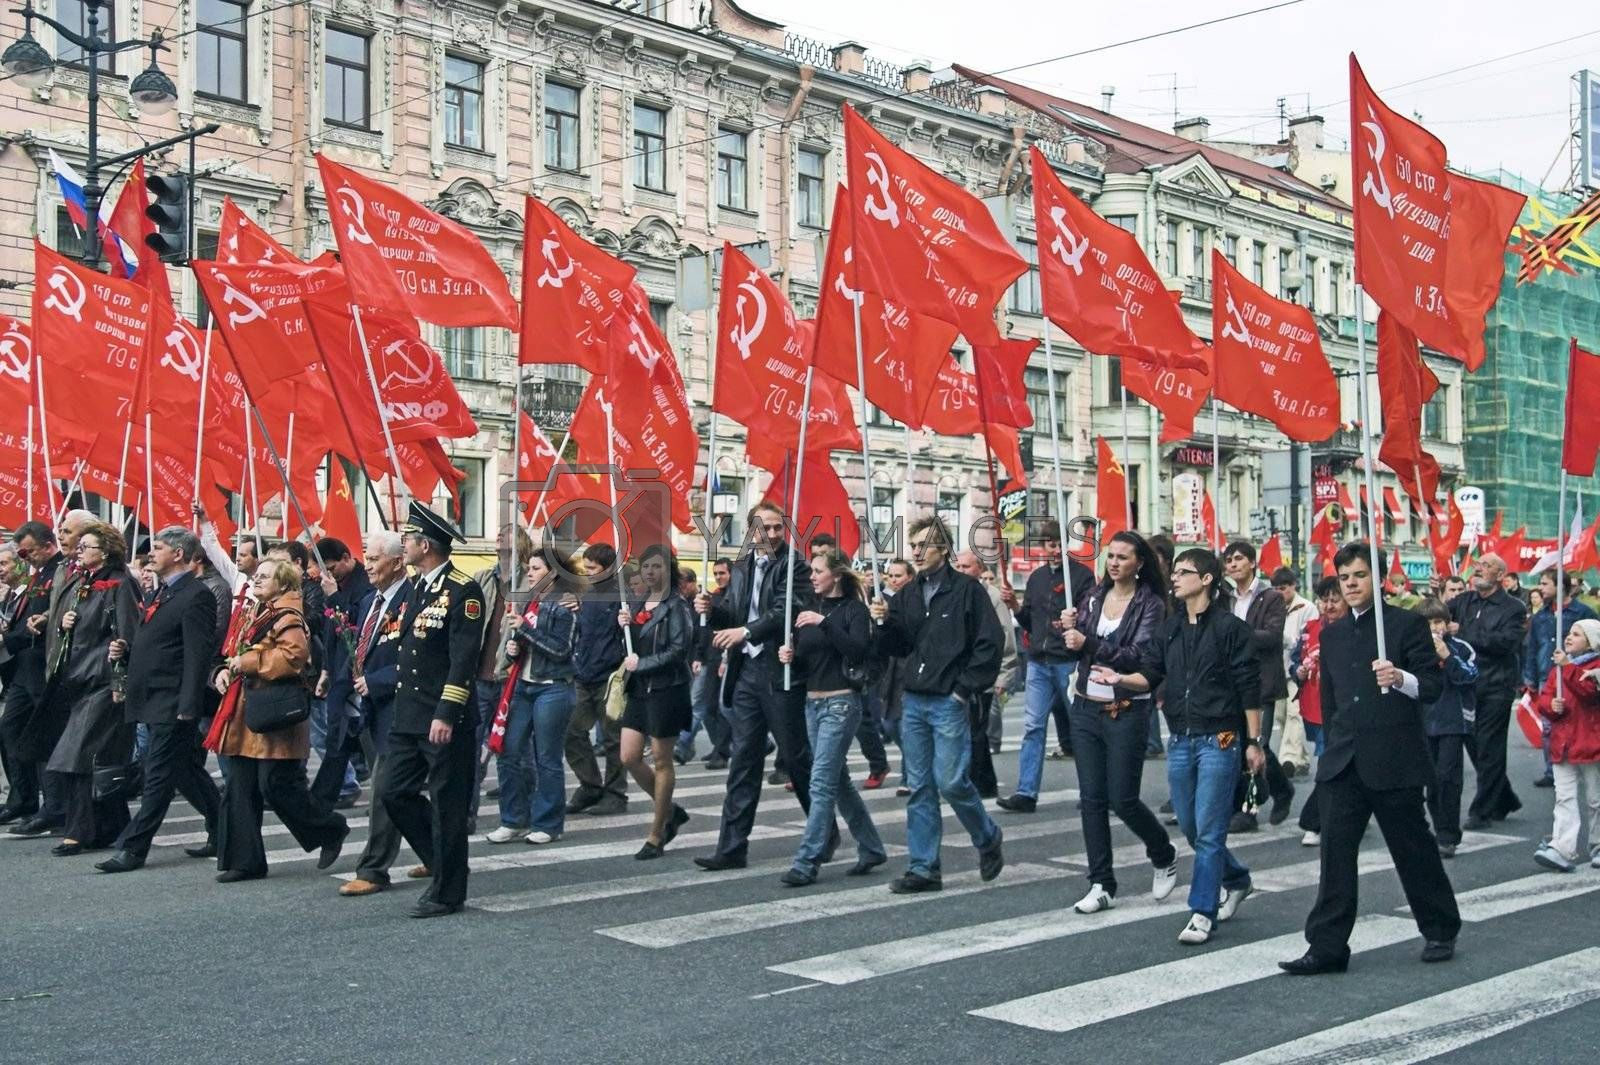 ST PETERSBURG - MAY 9: People walking in demonstration to celebrate World War II Victory Day May 9, 2008, St Petersburg, Russia.